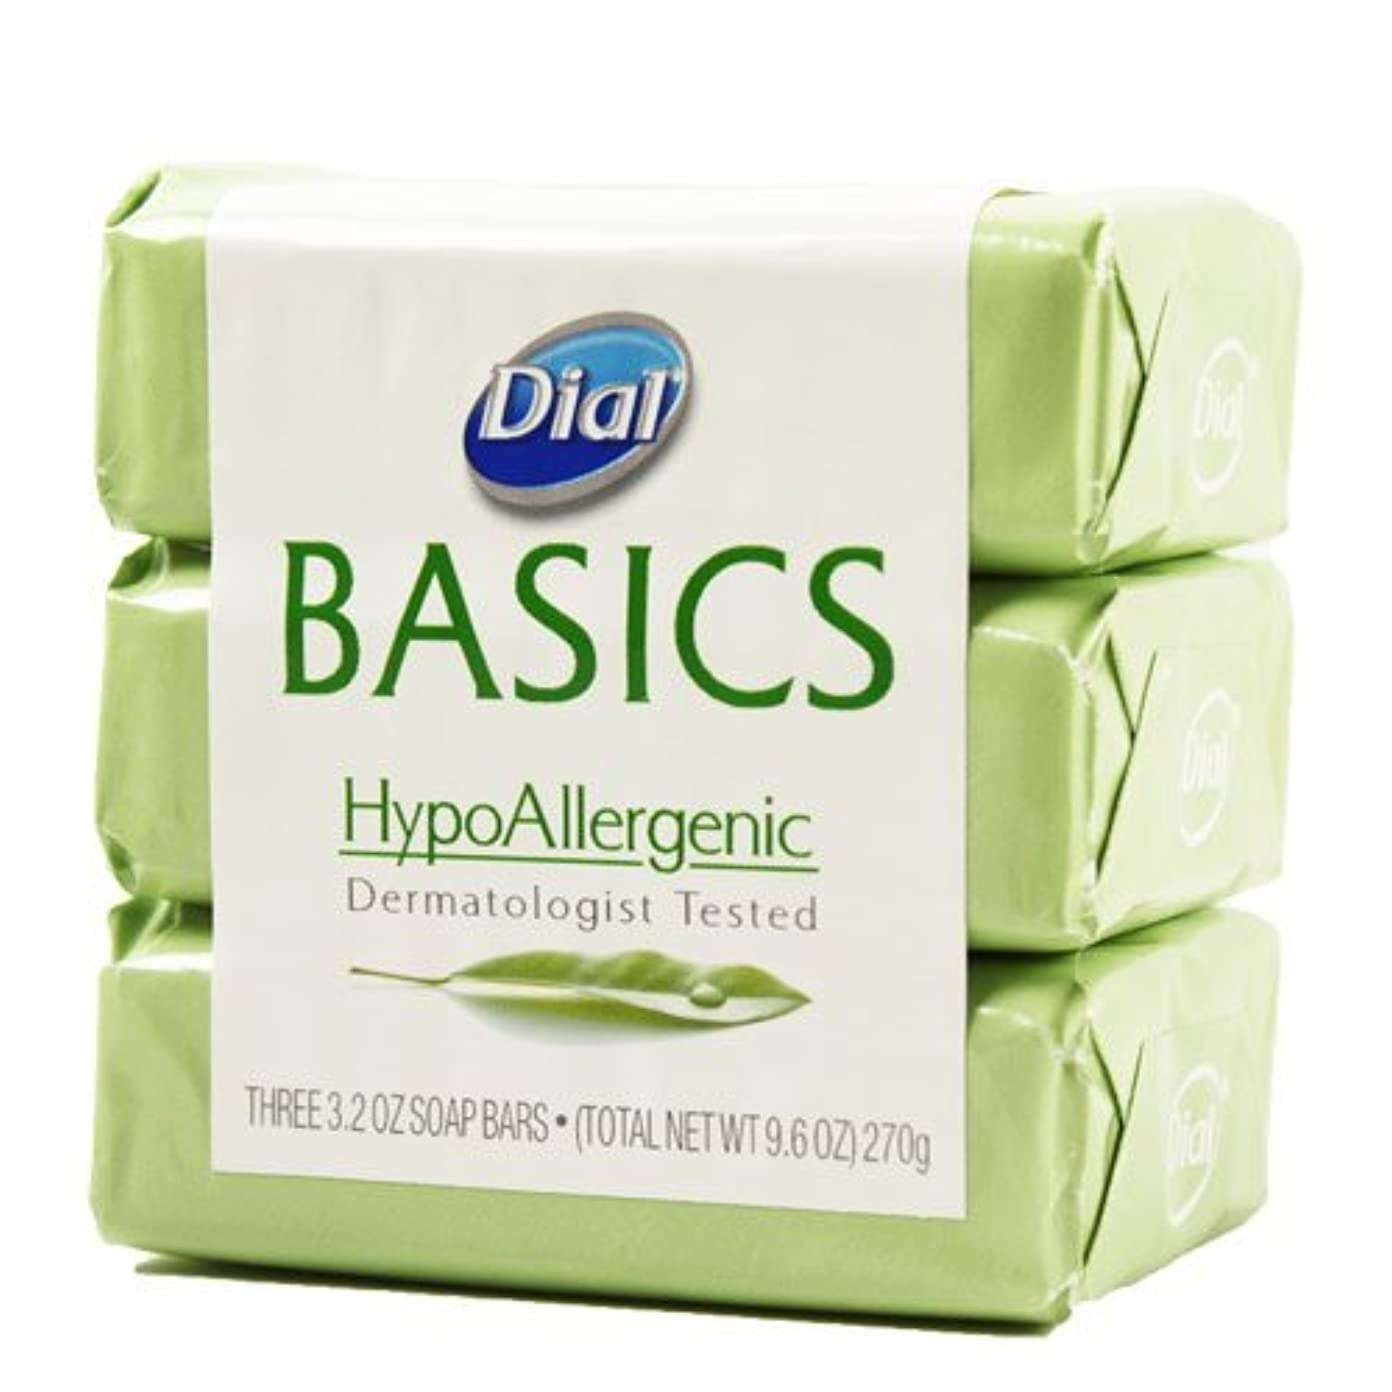 勢い限定擬人Dial Basics HypoAllergenic Dermatologist Tested Bar Soap, 3.2 oz (18 Bars) by Basics